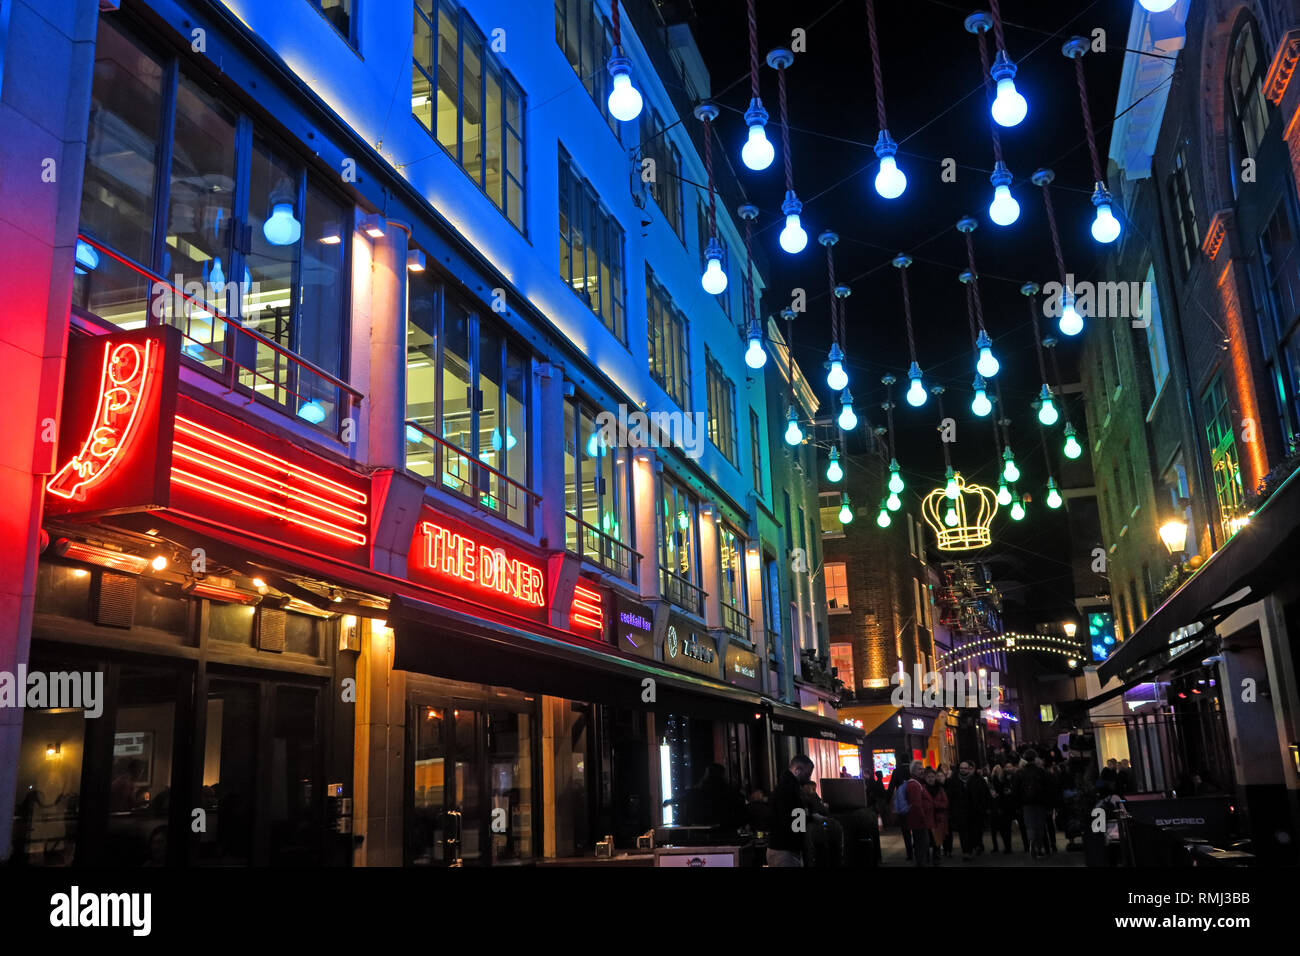 Carnaby Street, City of Westminster, London, England, UK, W1F 9PS - Stock Image